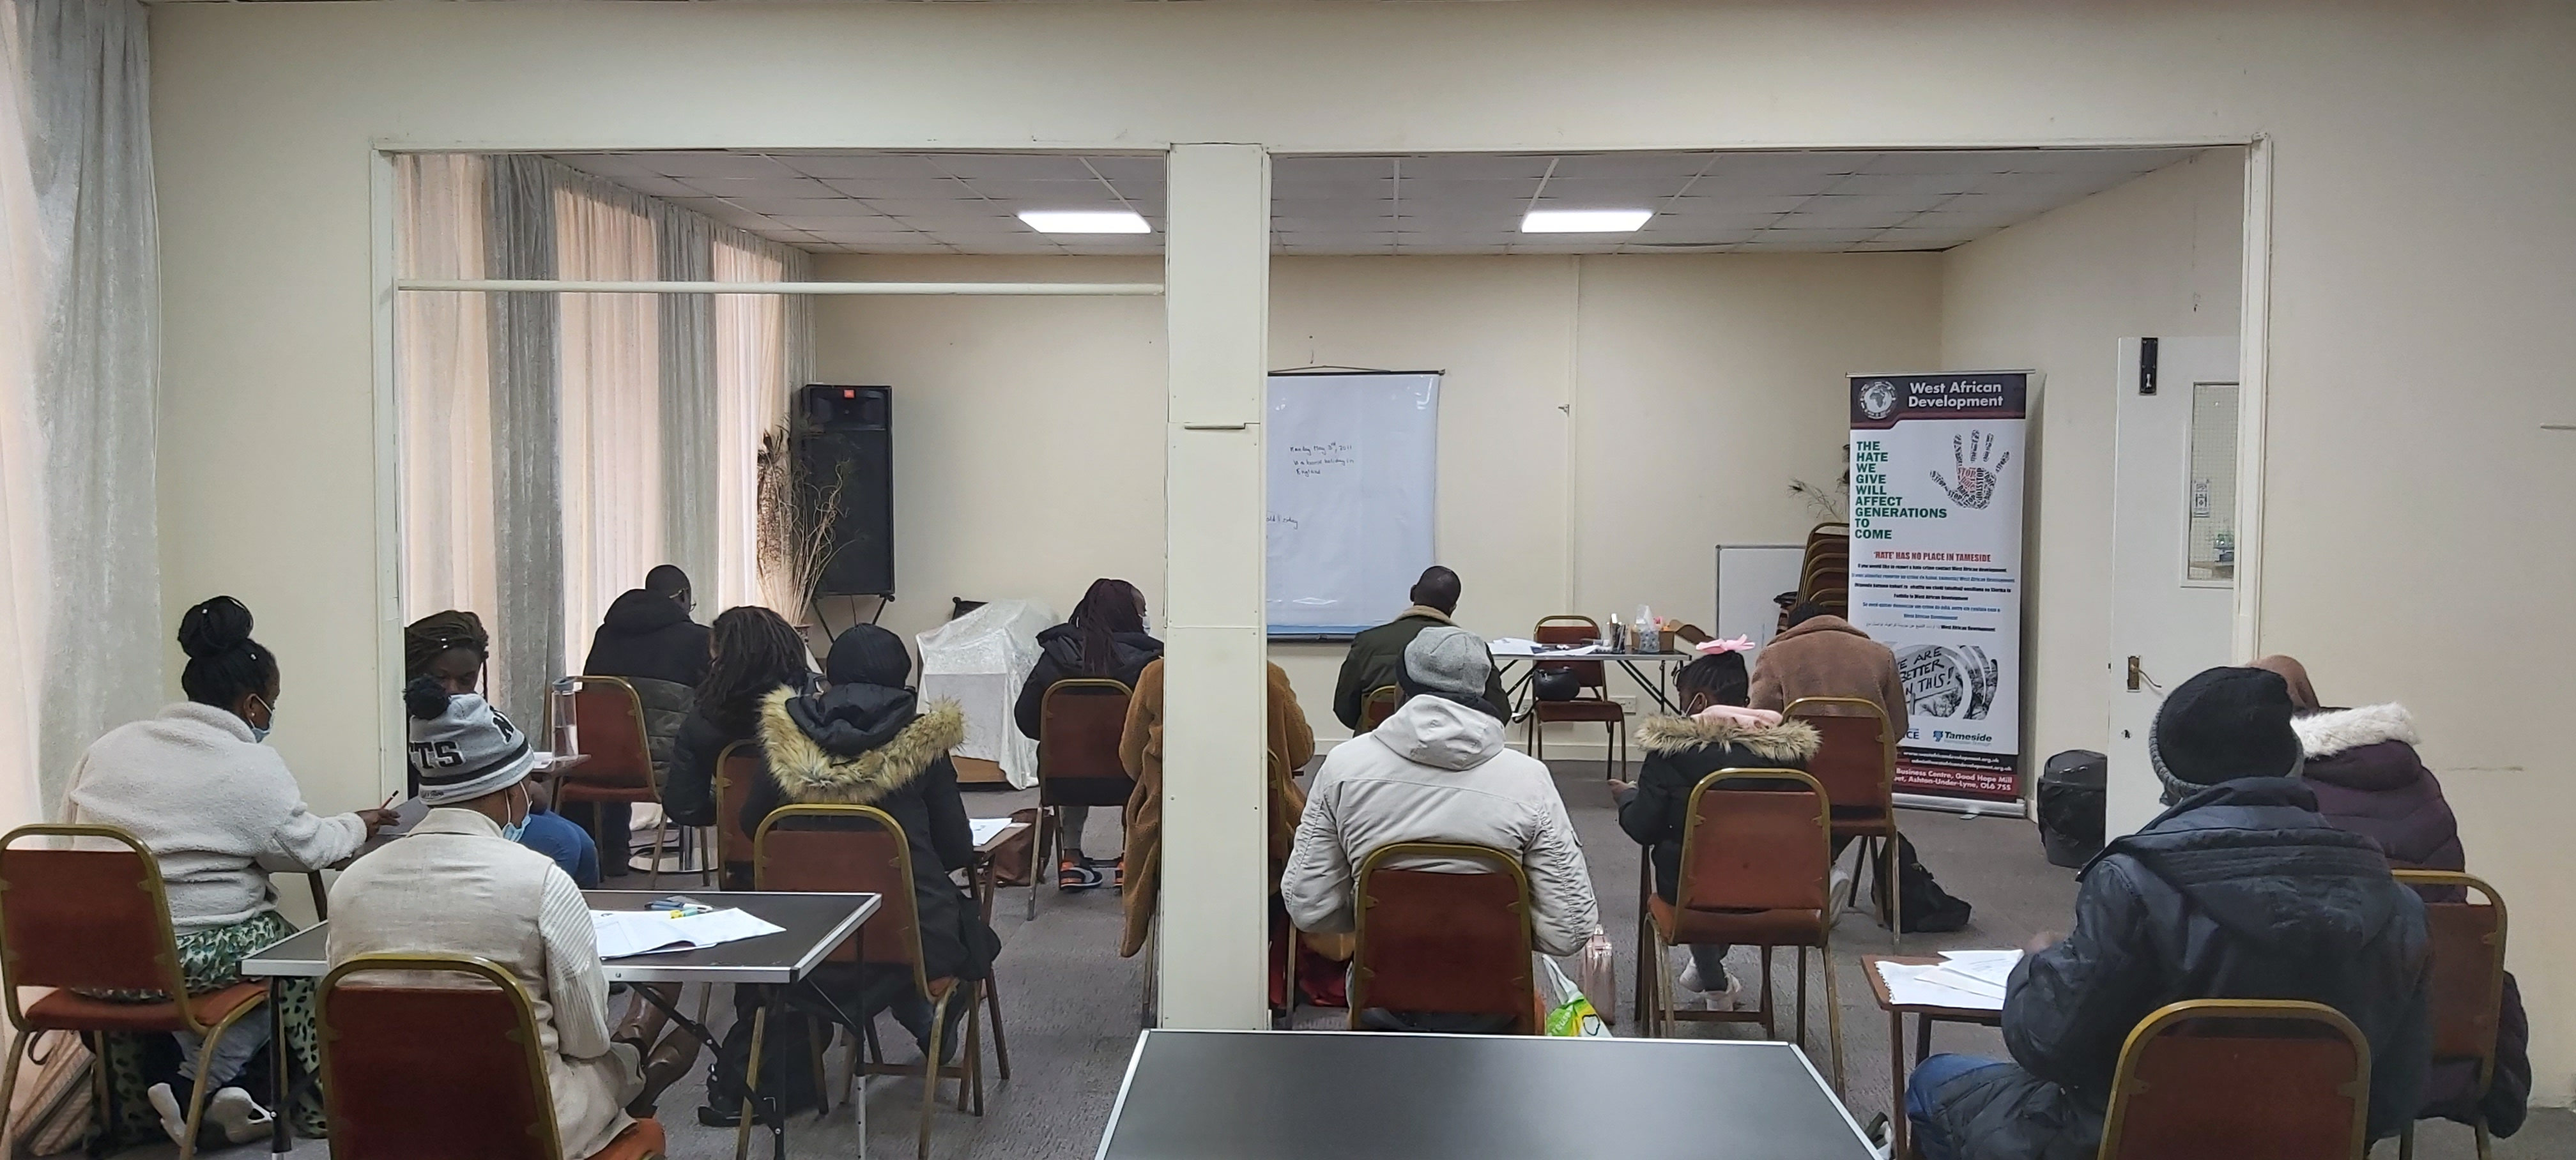 Learners studying in a classroom at West African Development